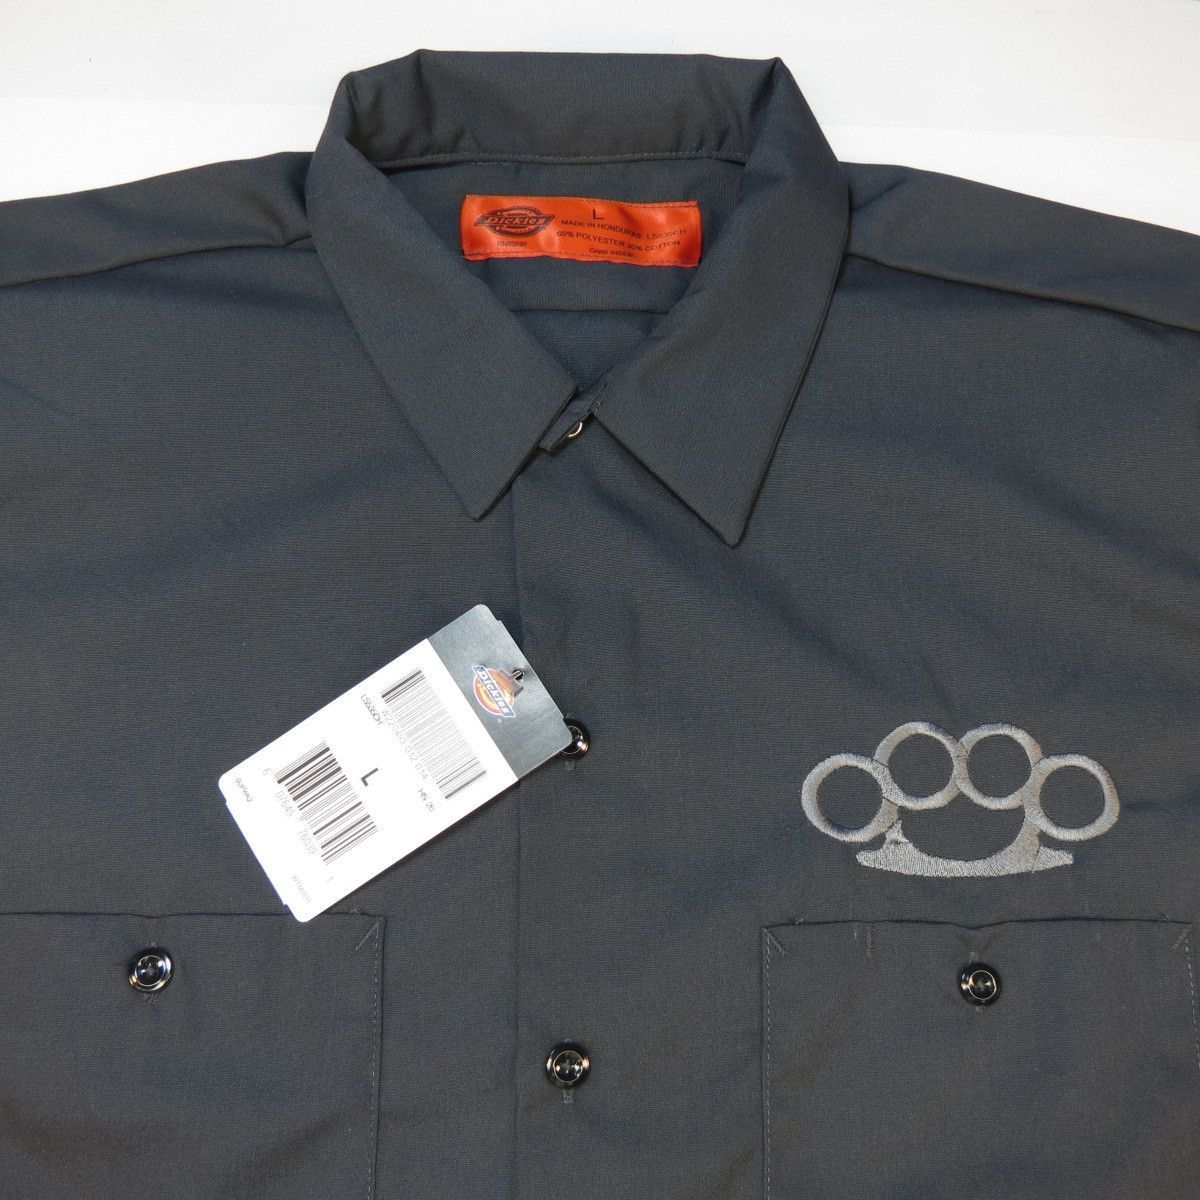 Custom Printed Dickies Work Shirts Chad Crowley Productions